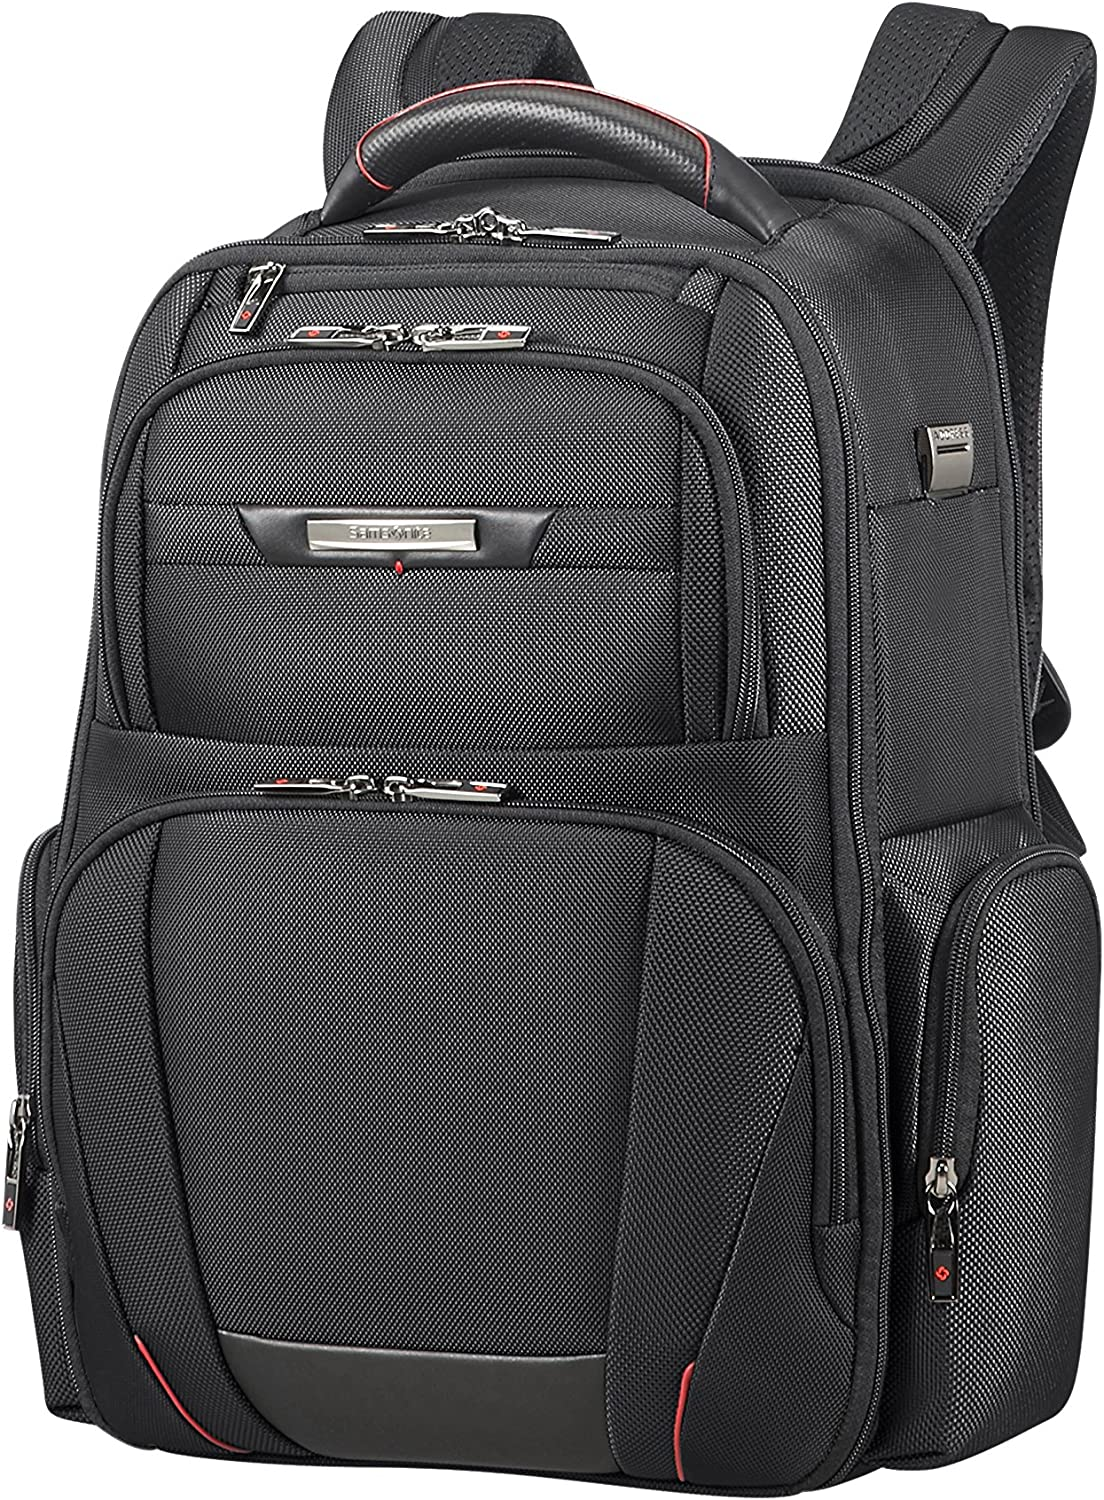 Samsonite PRO-DLX 5 - Backpack for 15.6'' Laptop 1.4 KG Mochila tipo casual, 44 cm, 20 liters, Negro (Black)